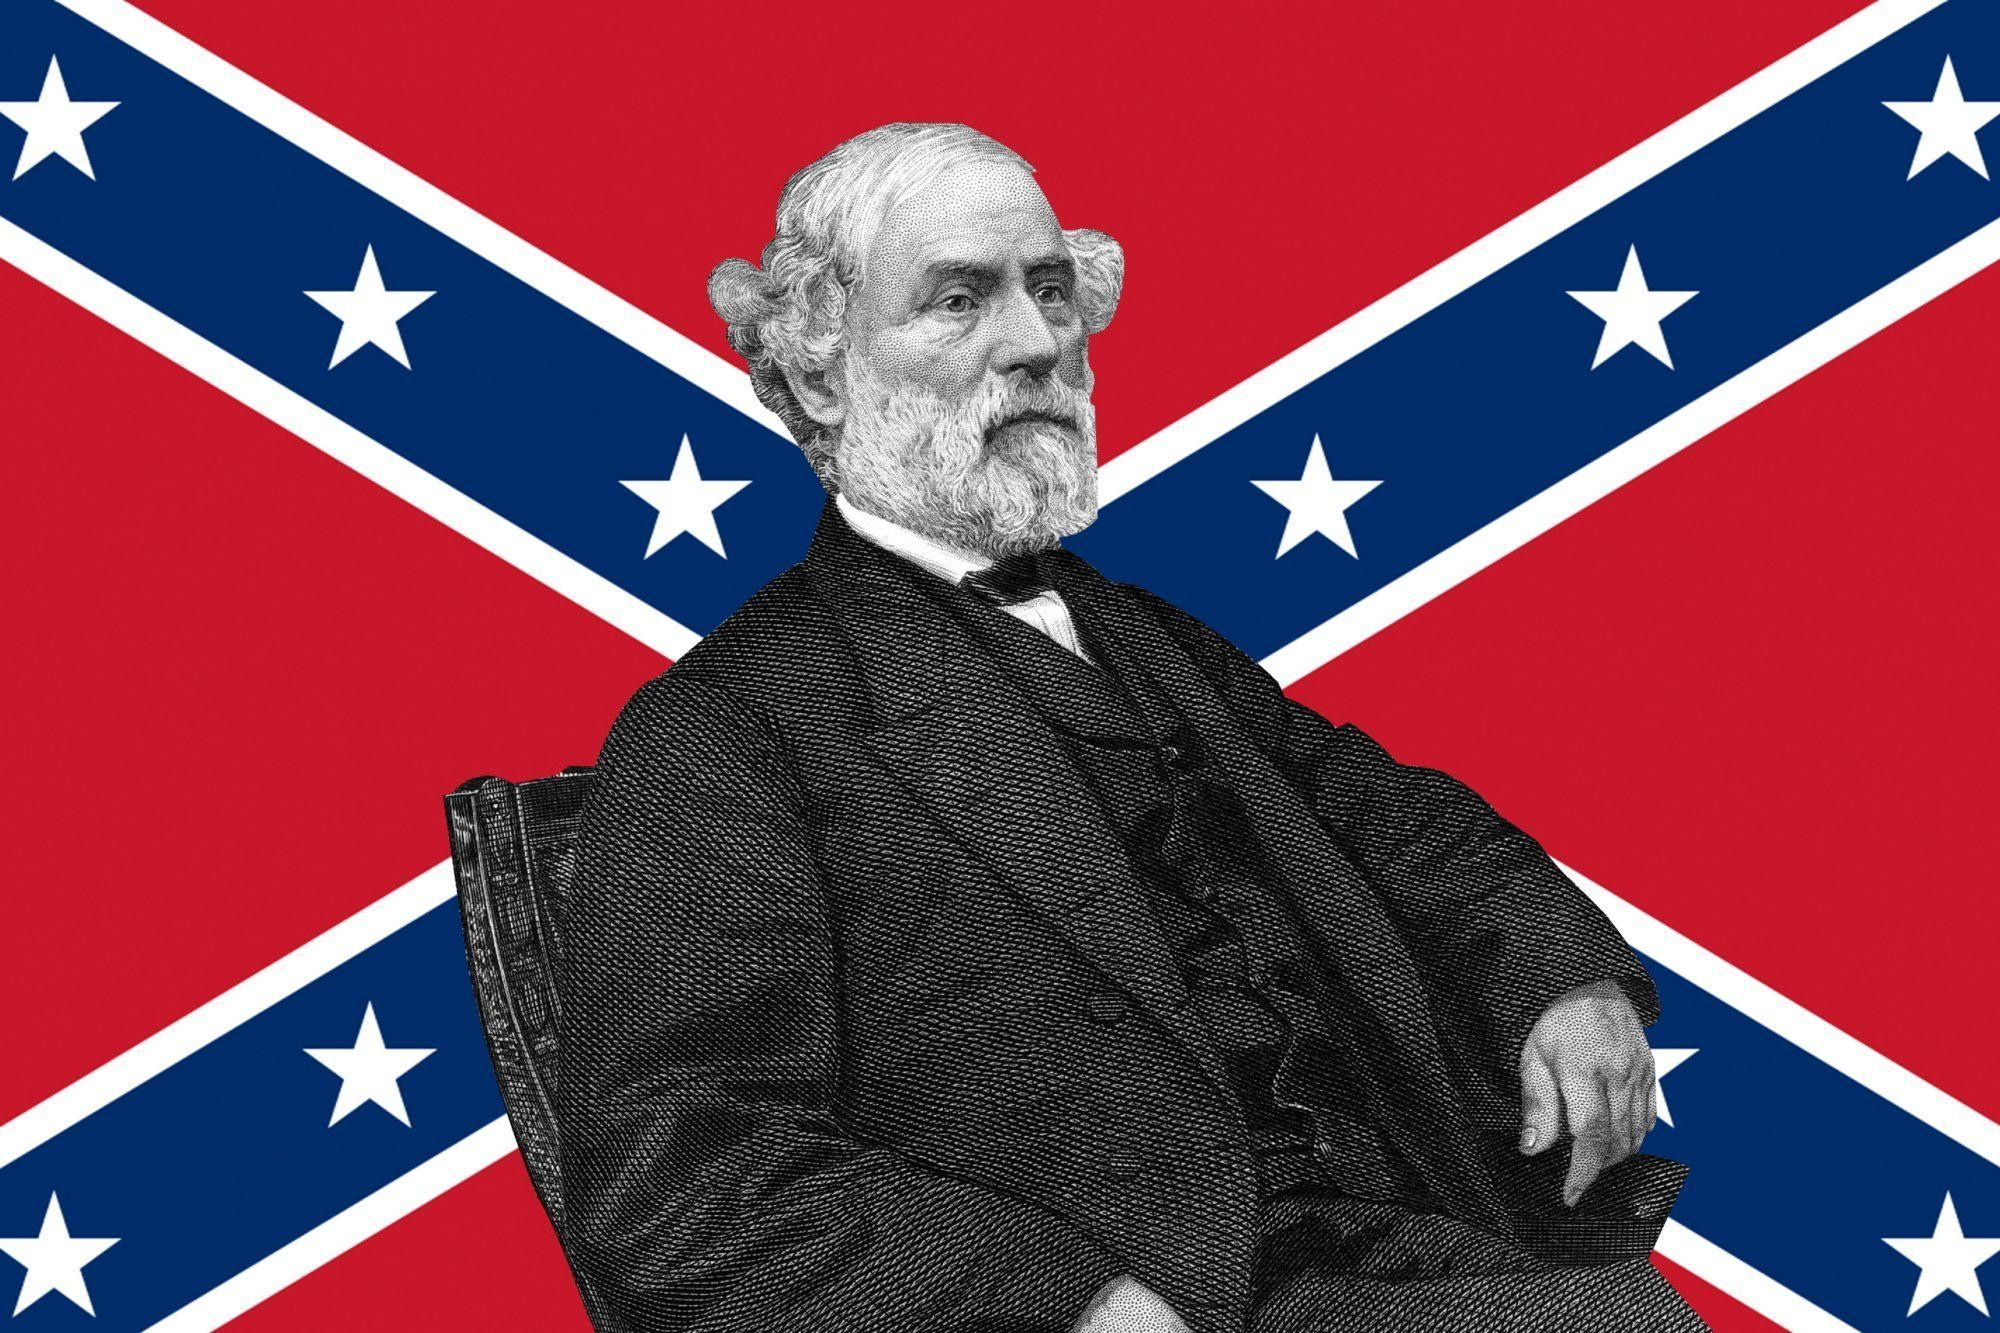 2000x1333 Confederate Flag Wallpapers Group With 64 Items Download 1920x1200